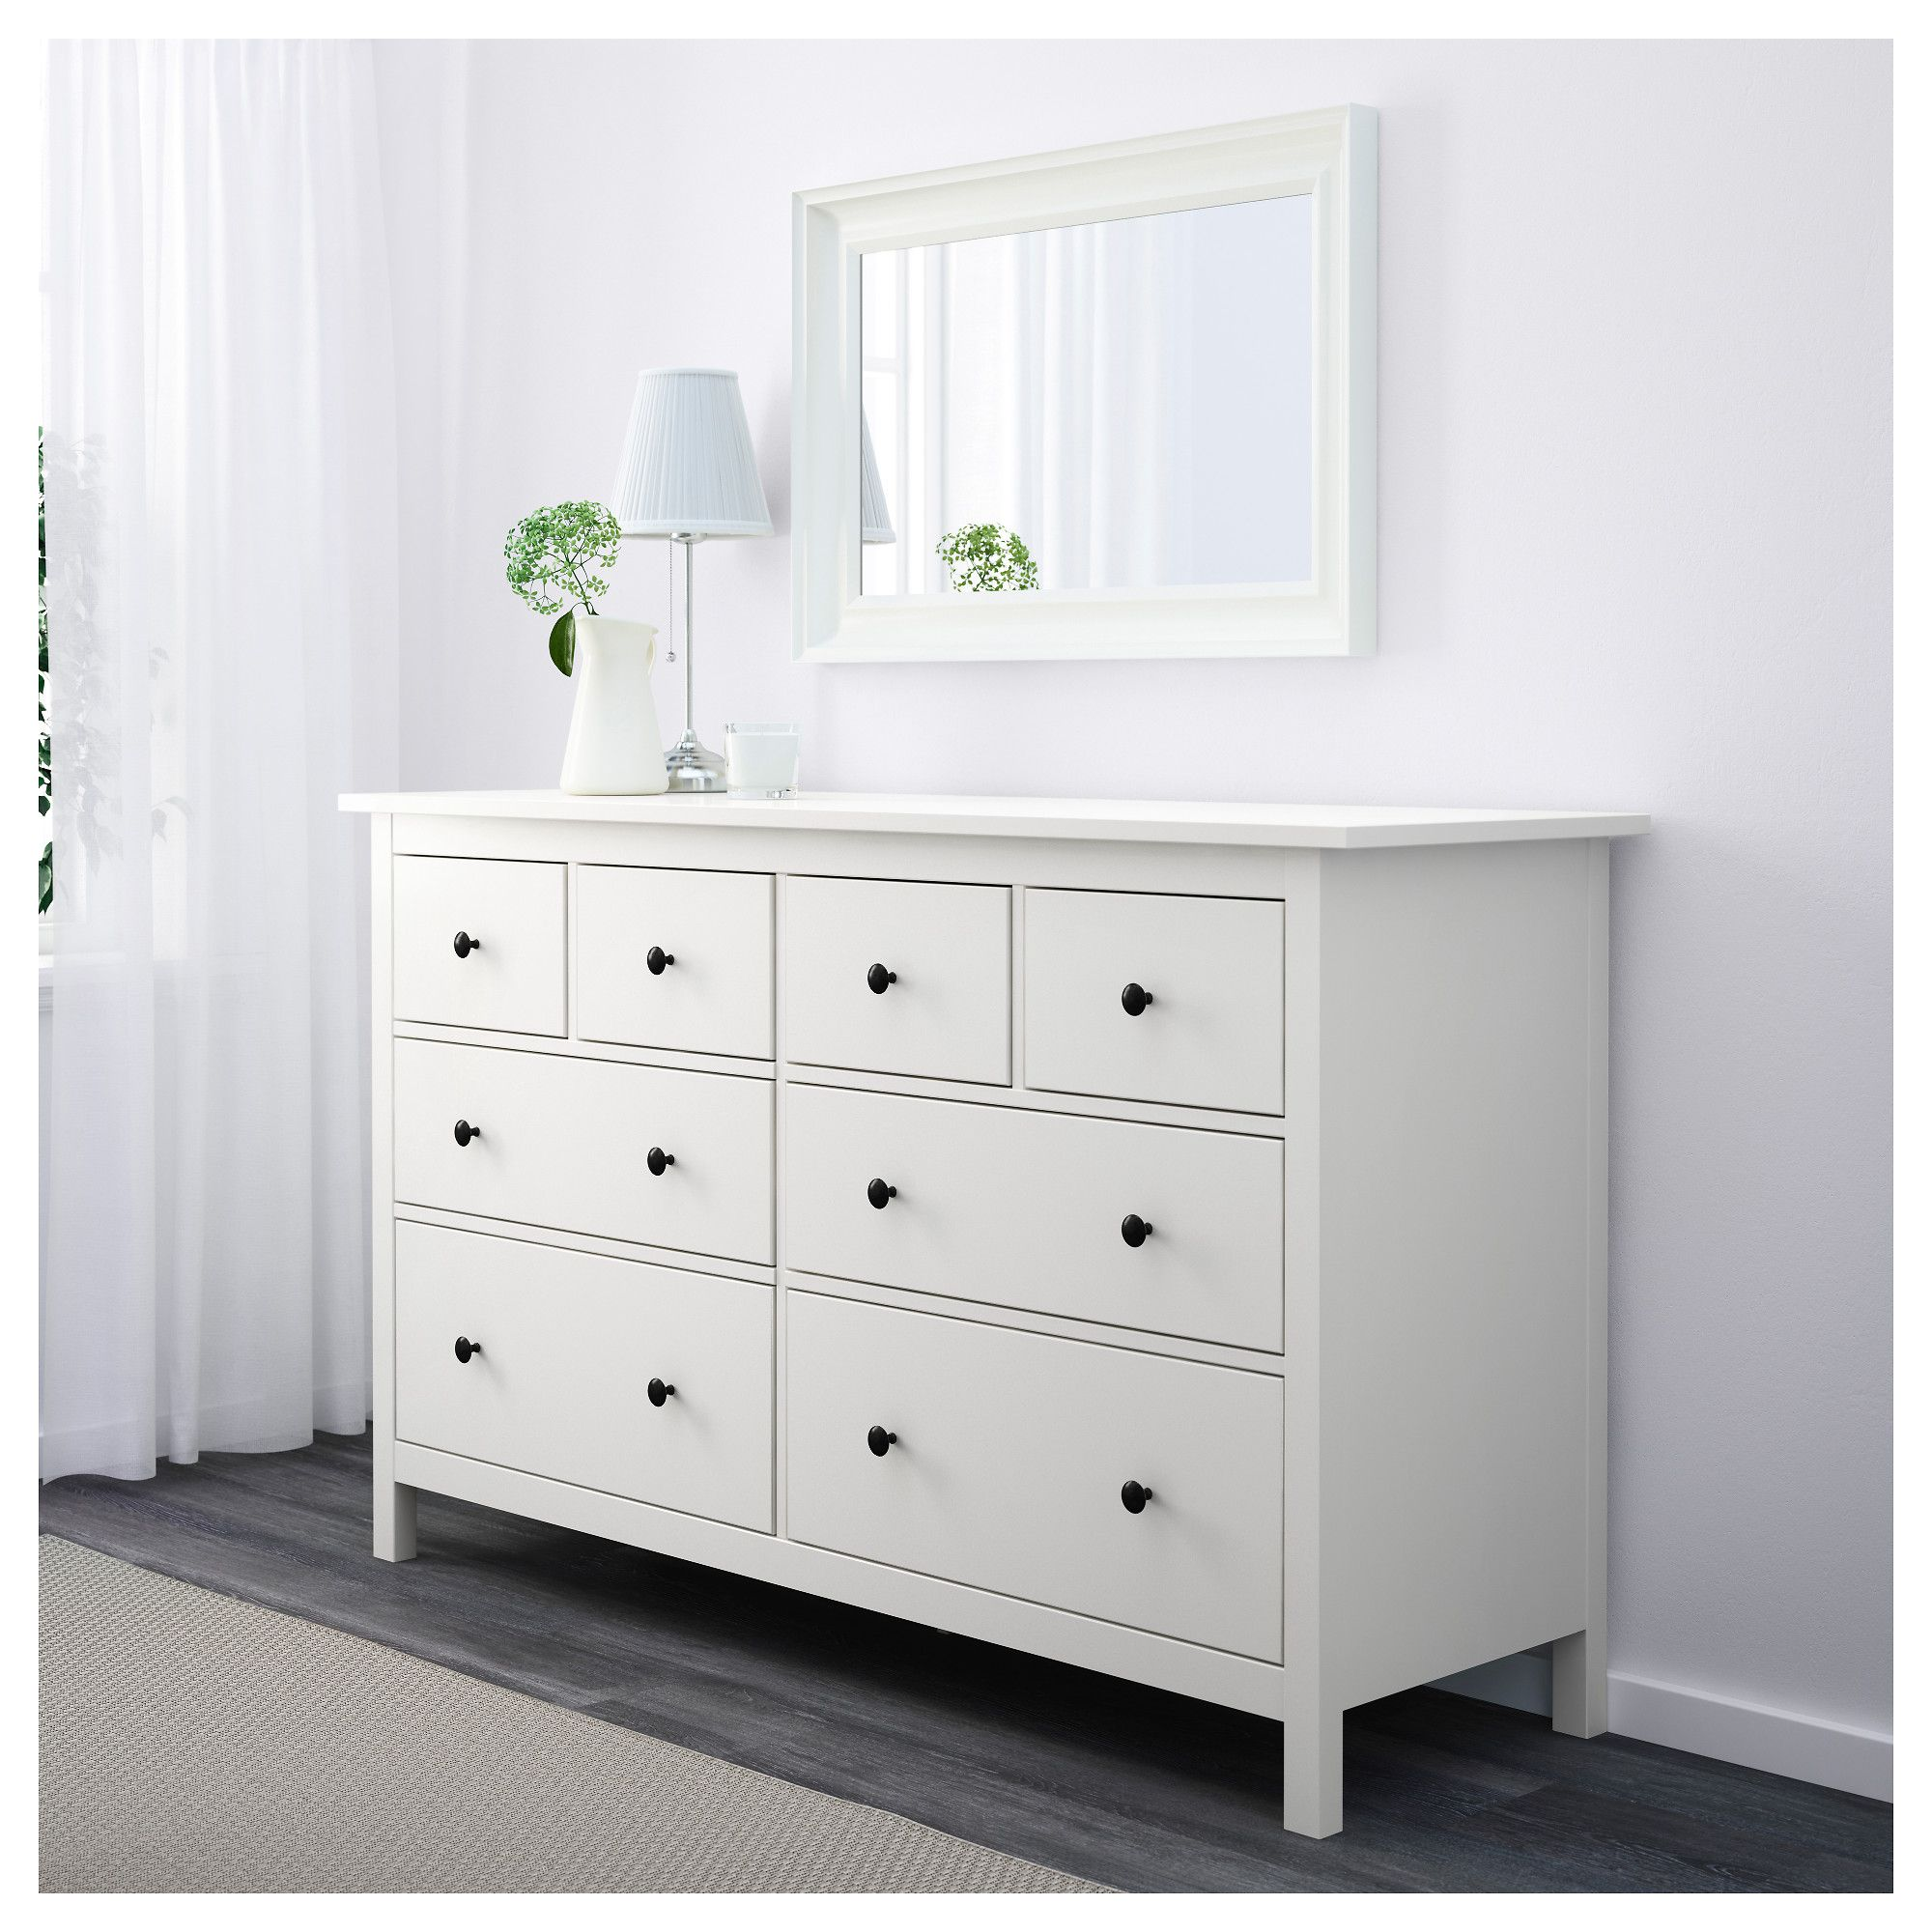 ikea hemnes 8 drawer dresser white in 2019 products. Black Bedroom Furniture Sets. Home Design Ideas